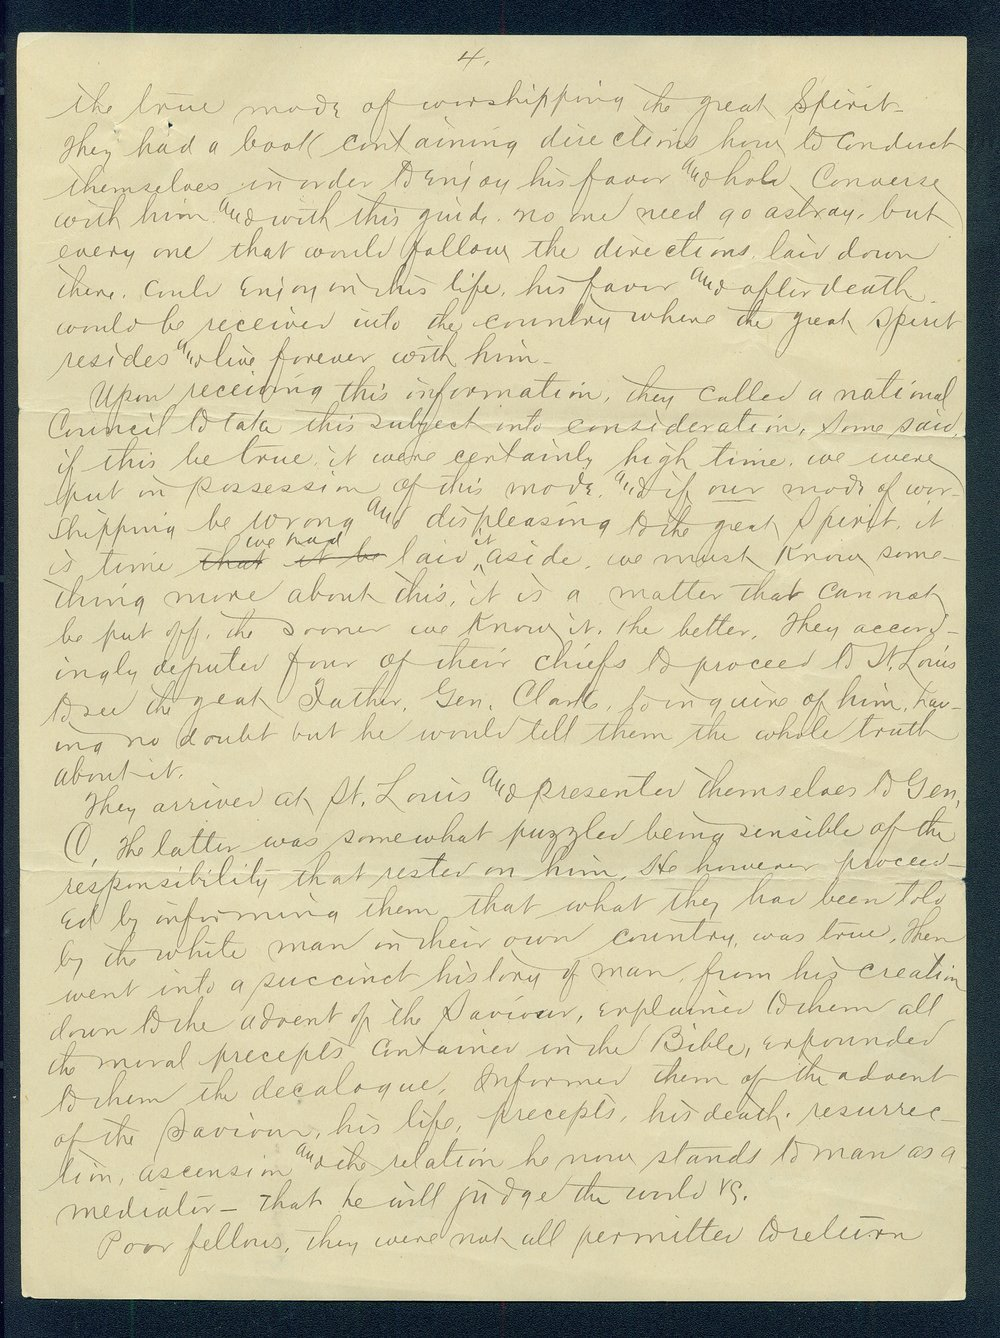 William Walker to G.P. Disosway - 4